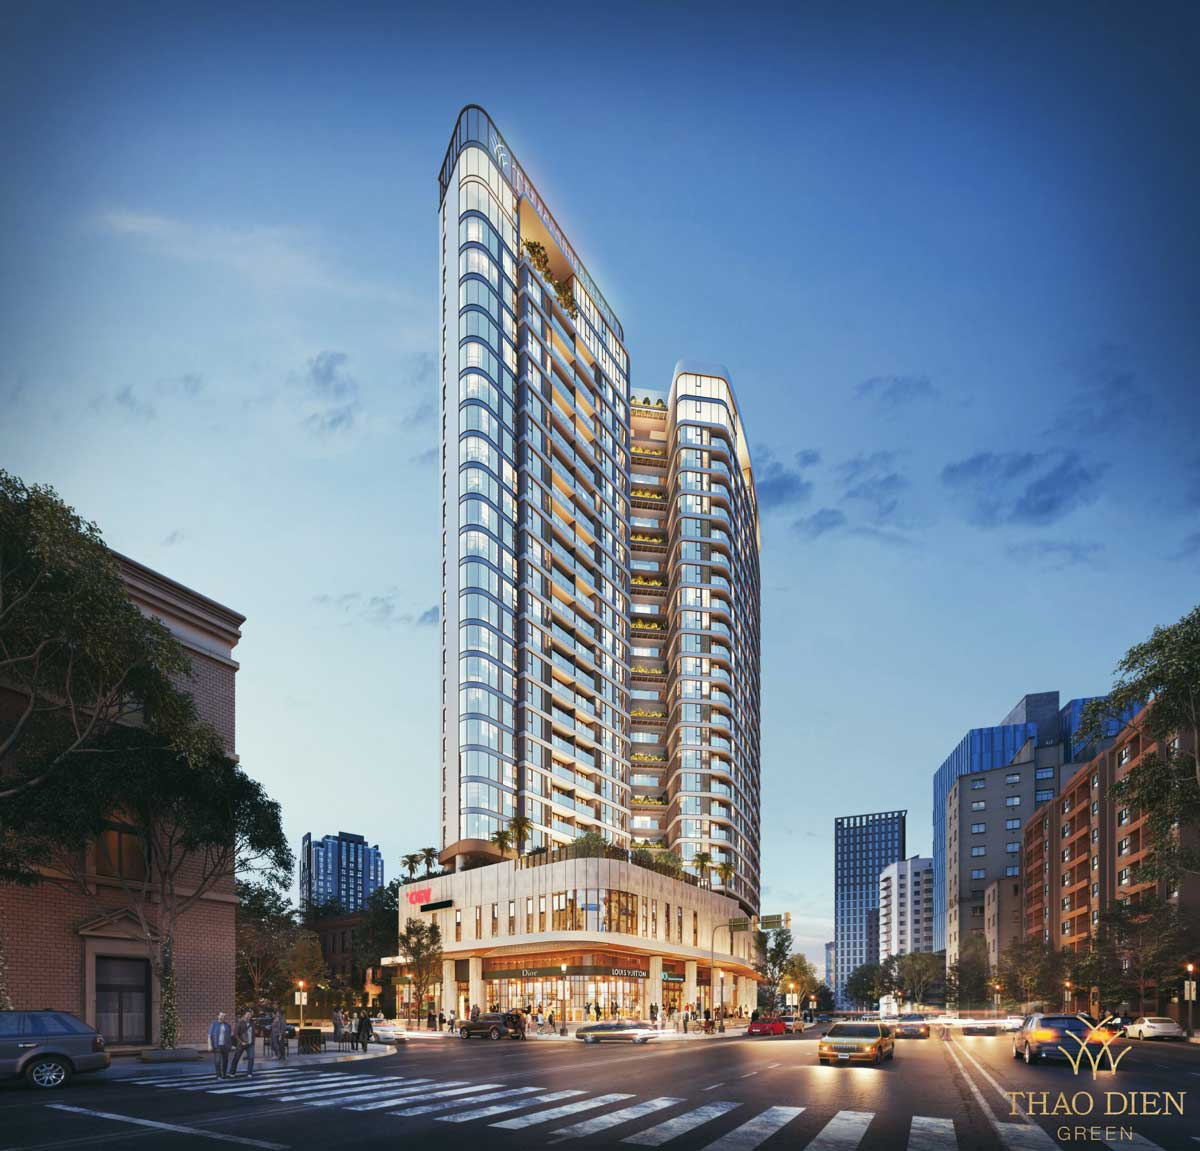 toan canh du an can ho thao dien green - Thảo Điền Green Towers Quận 2